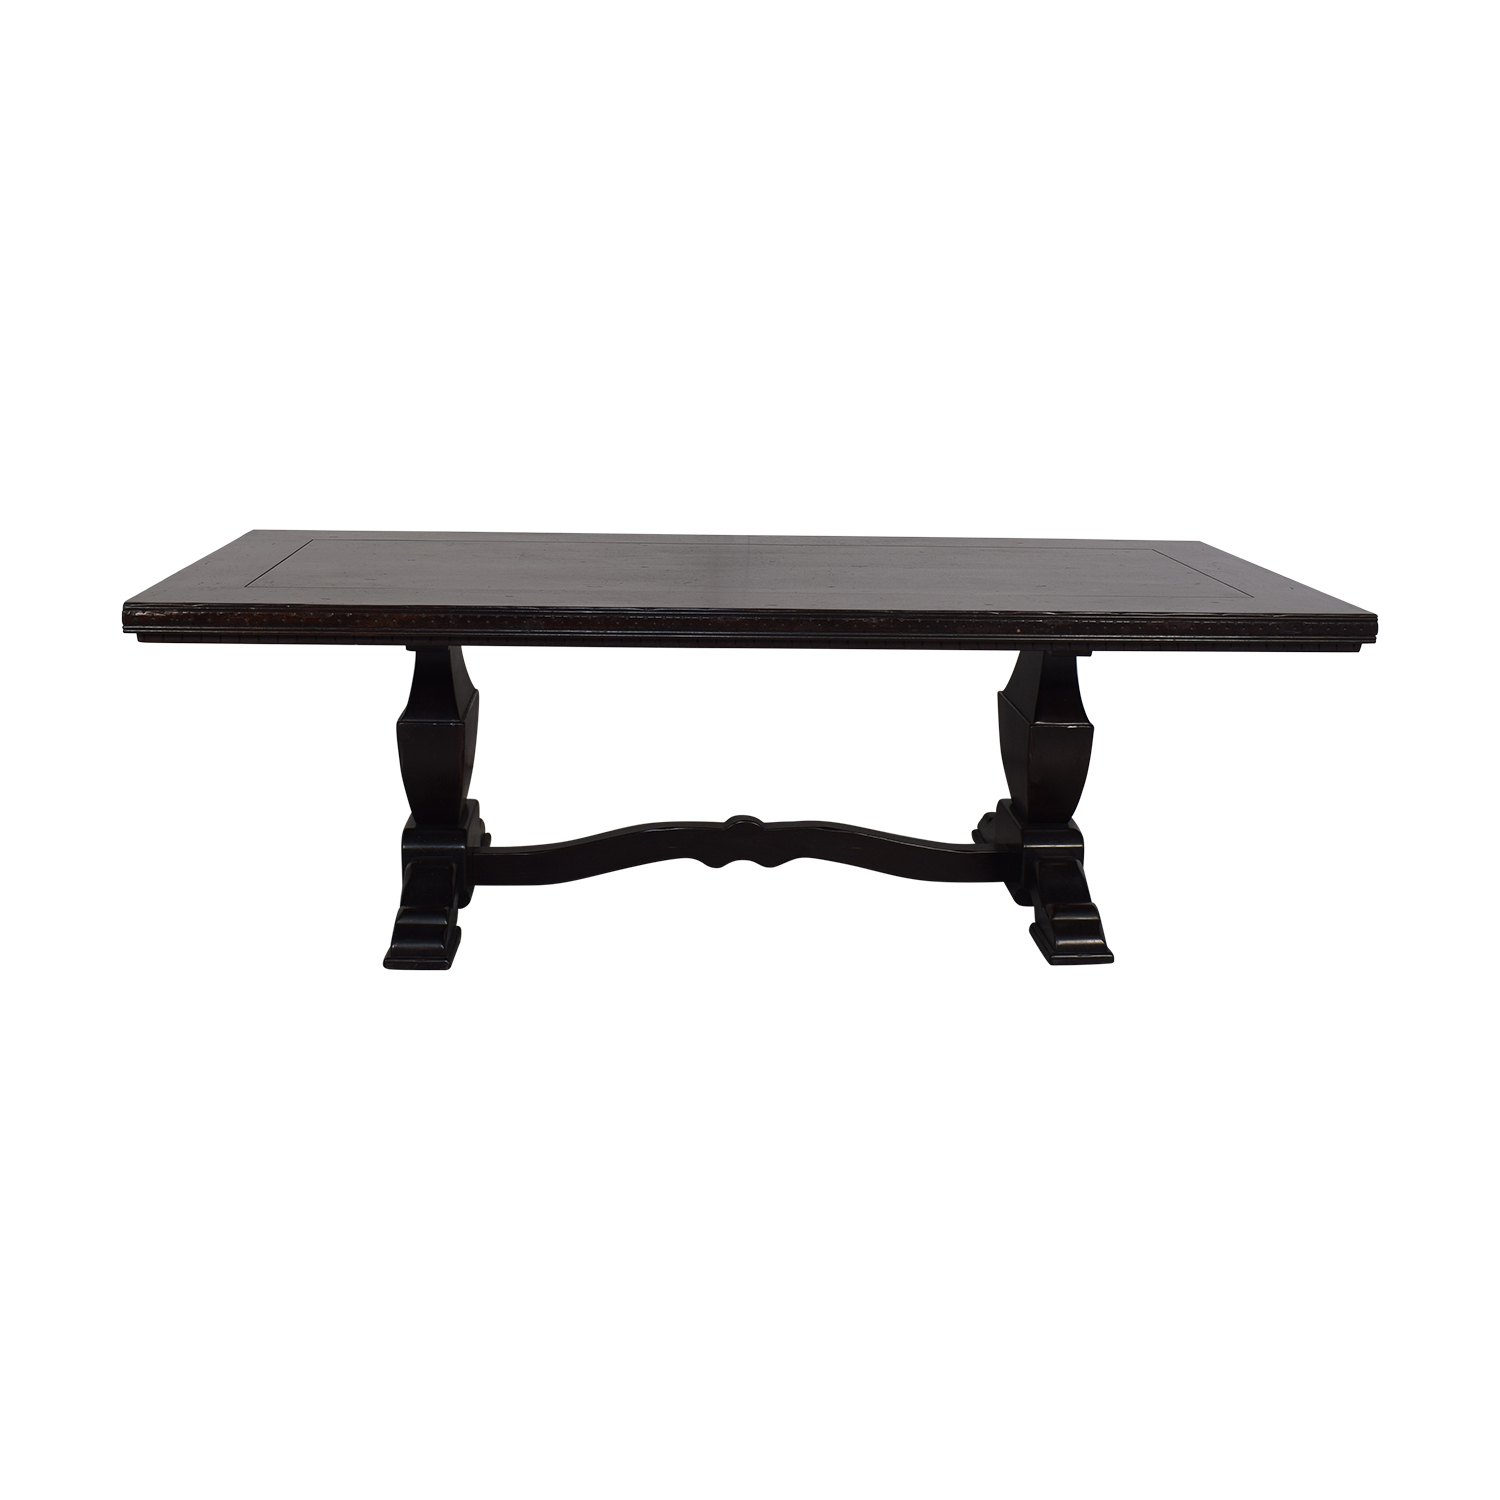 South Cone Furniture South Cone Furniture Salvatore Dining Table used